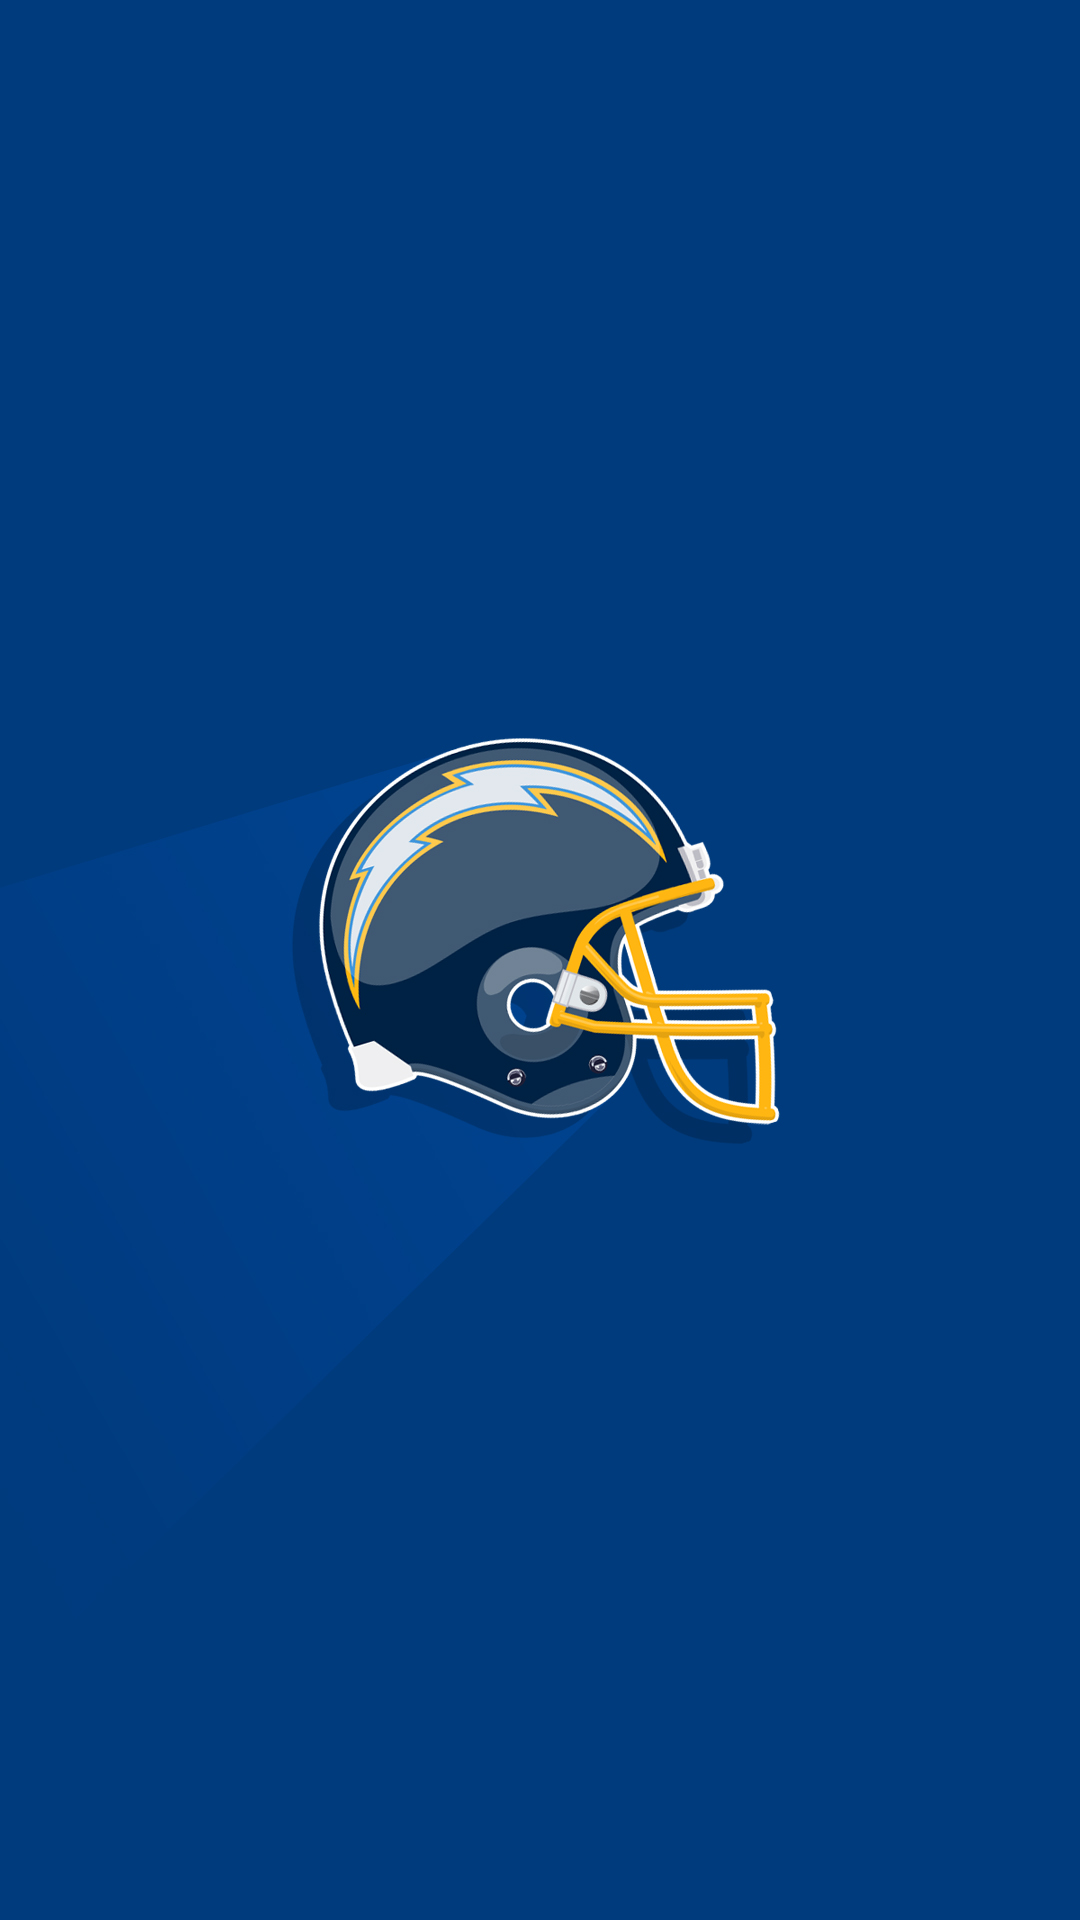 San Diego Chargers Wallpaper Iphone 6s Plus By Mattiebonez On